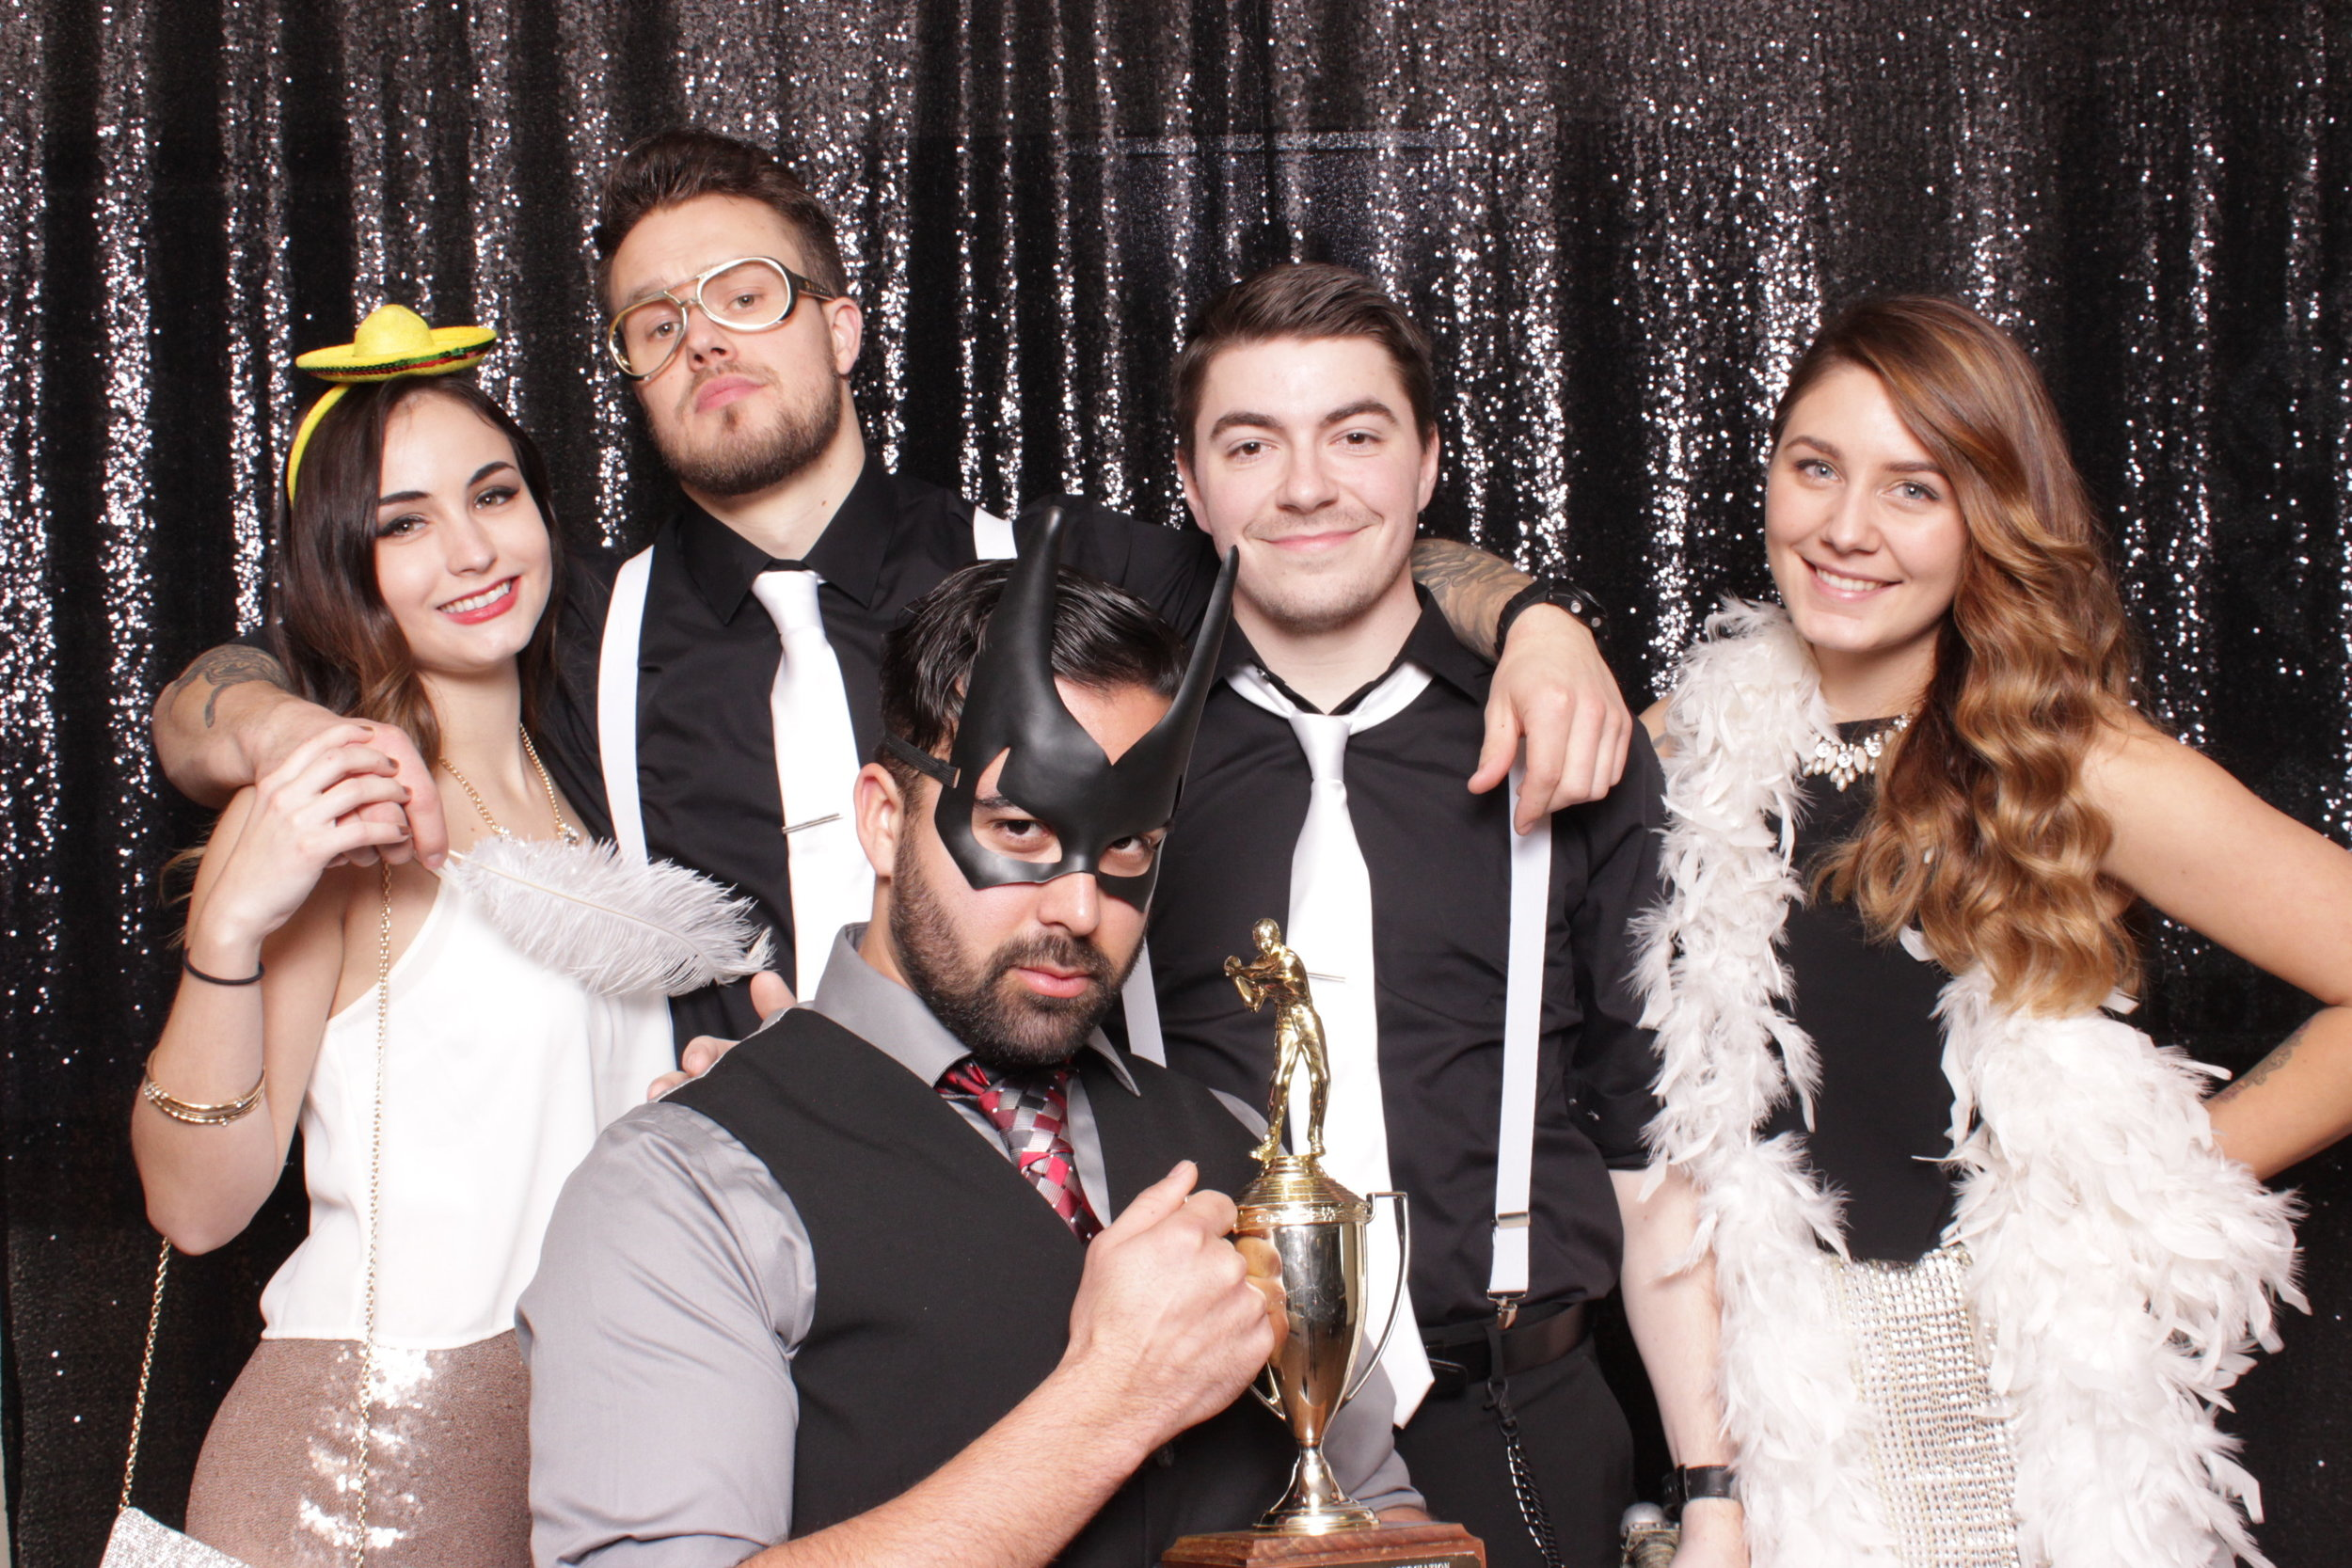 props-chico-trebooth-photo-booth-rental.jpg